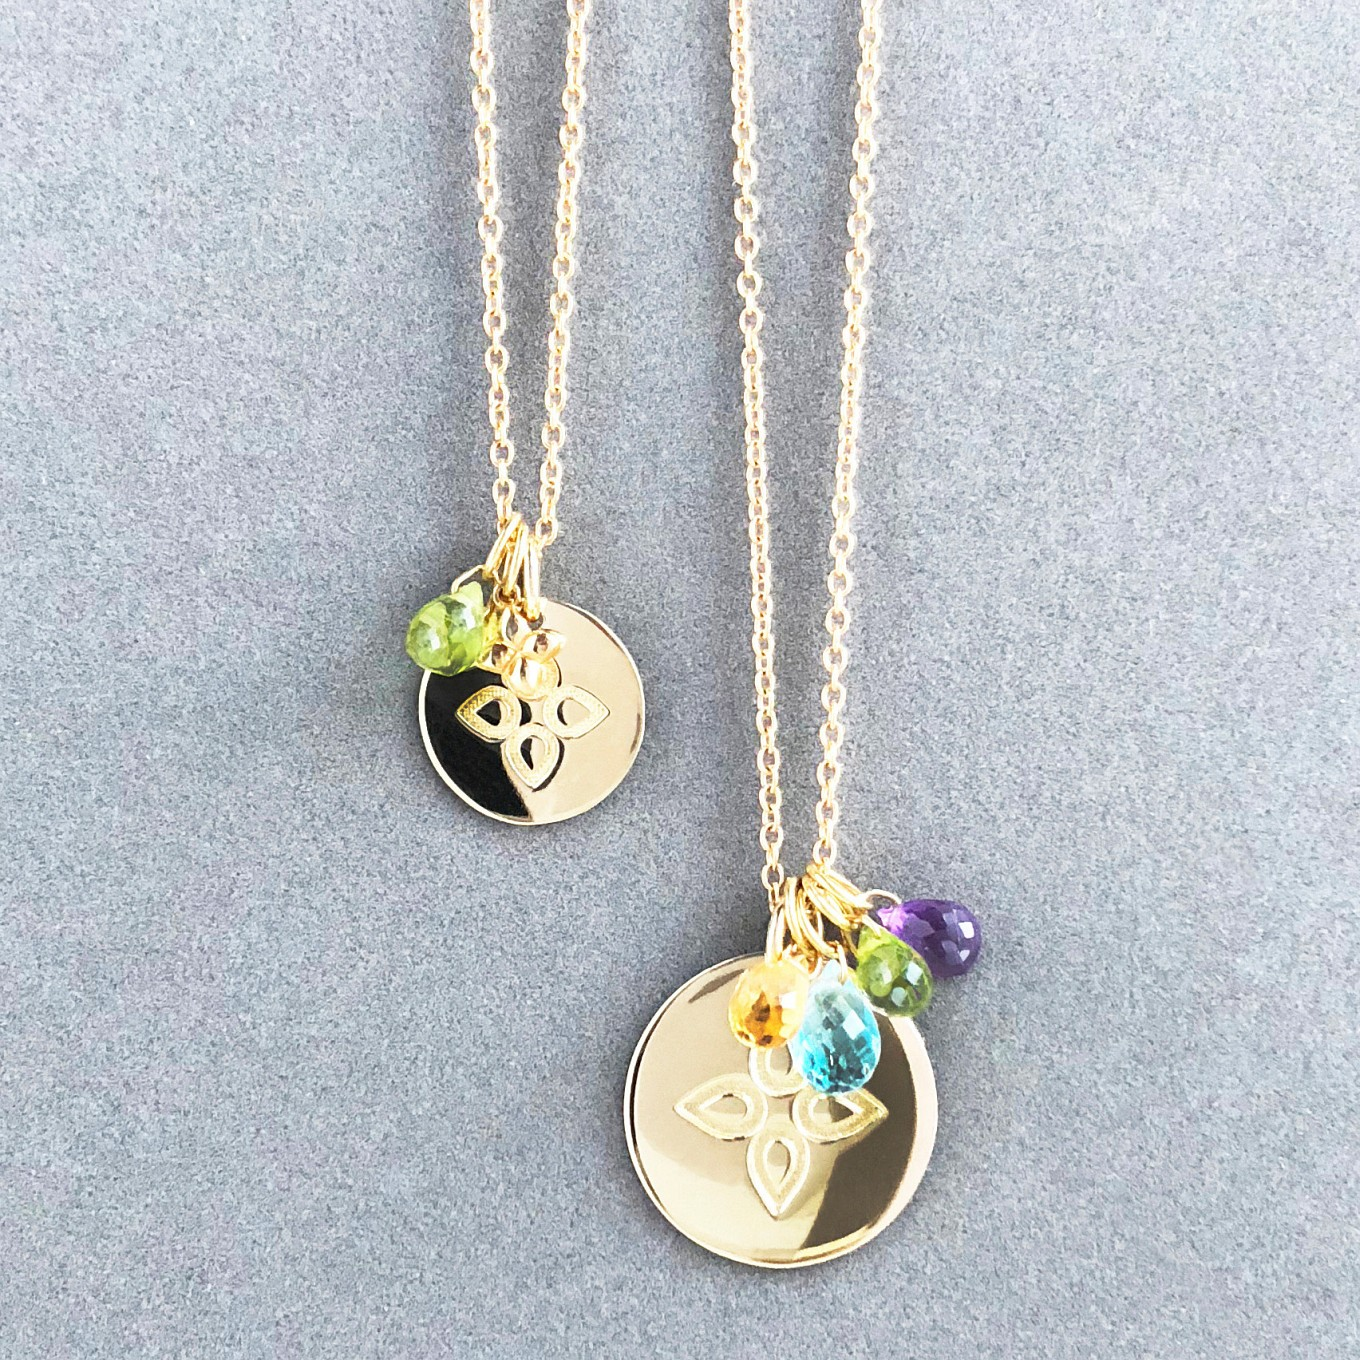 love disc pendants & gemstone charms. small - medium - large discs